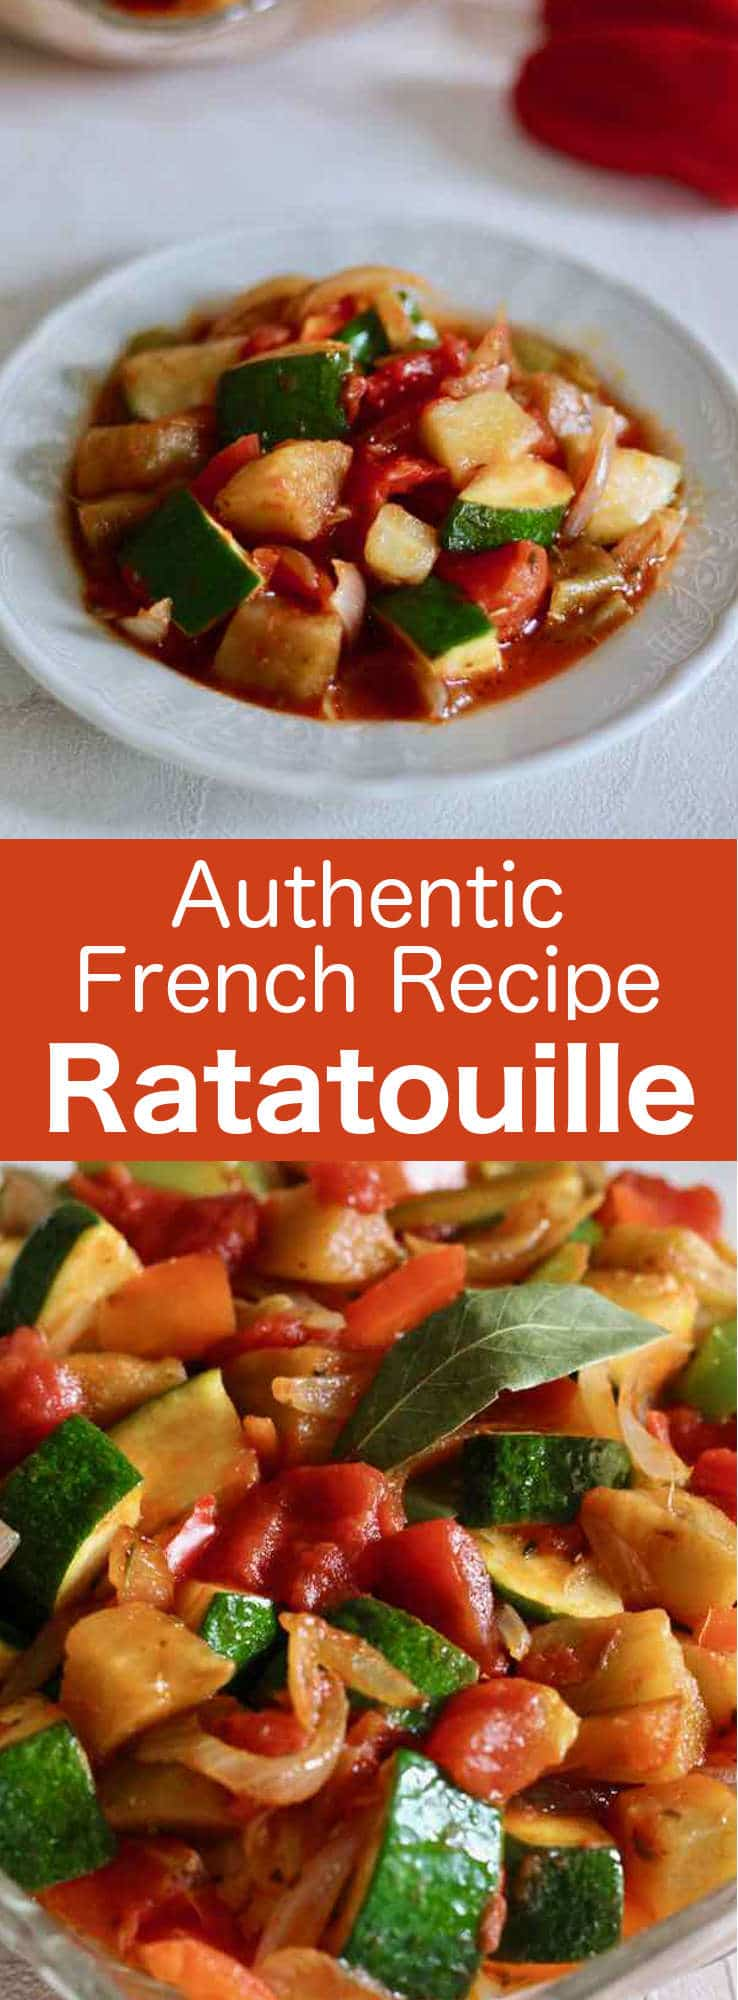 Every authentic ratatouille includes zucchini, eggplant, tomatoes, peppers, onions and olive oil but also garlic, bouquet garni and a touch of sugar. #France #French #196flavors